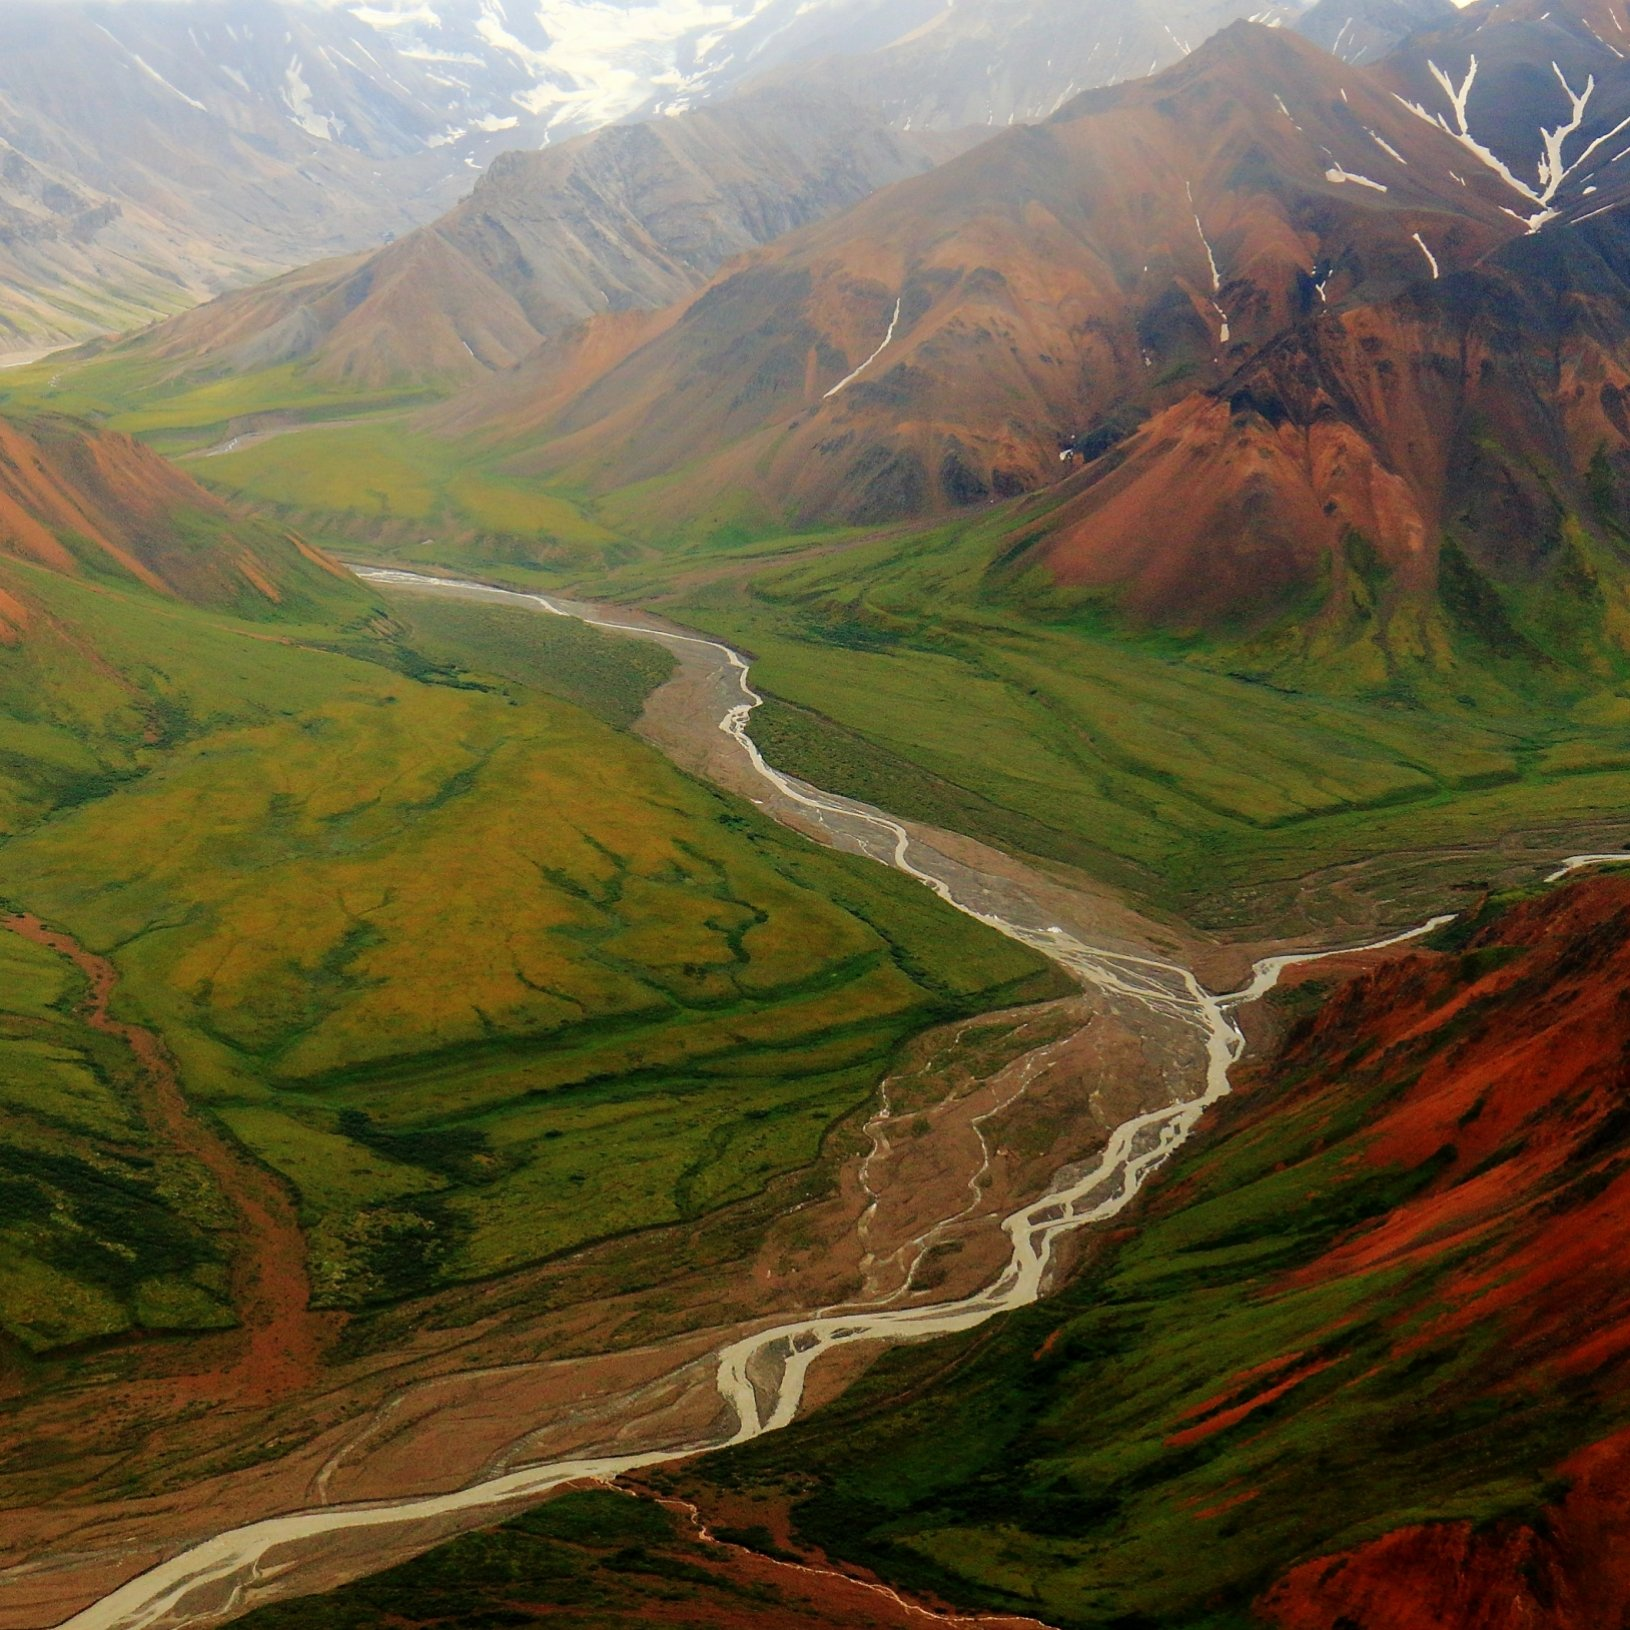 landscape parkmemories mountains adventure places sky travel green nature river denalinationalpark